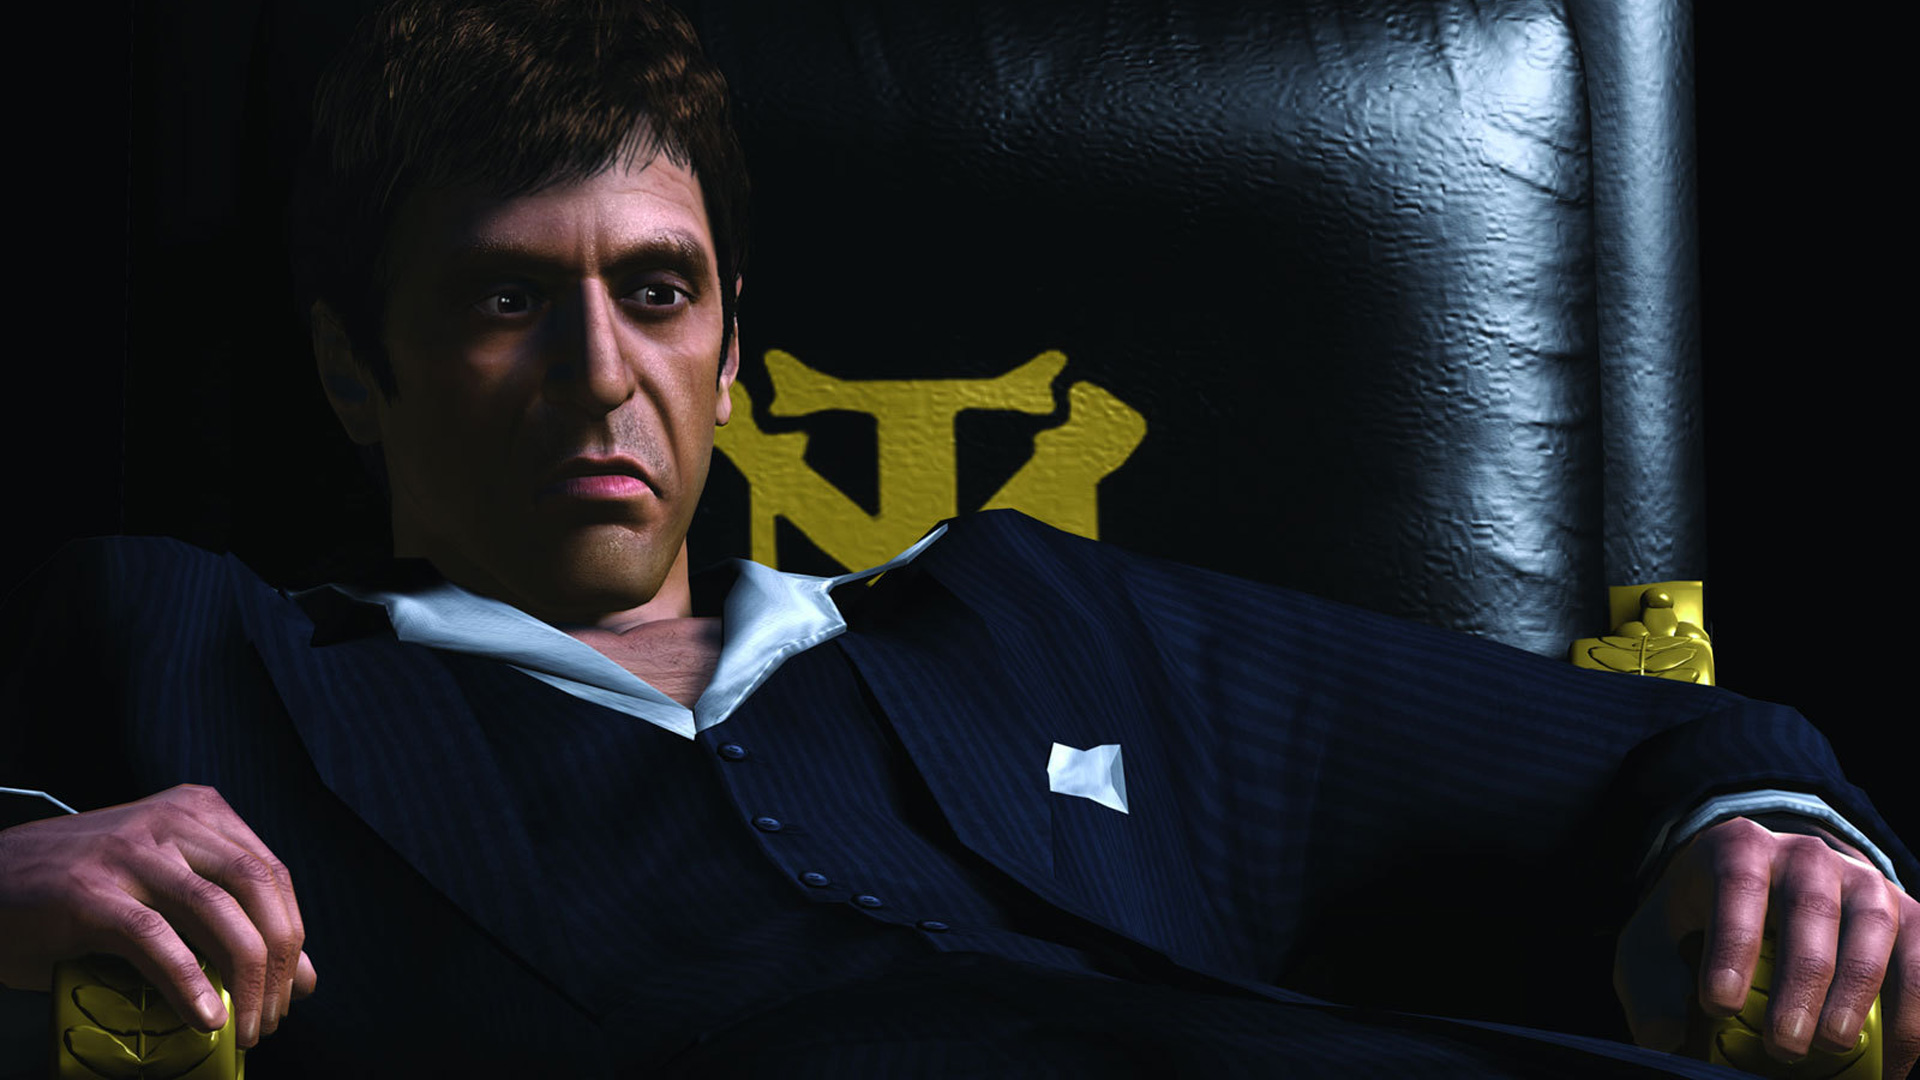 Scarface: The World Is Yours Wallpaper in 1920x1080